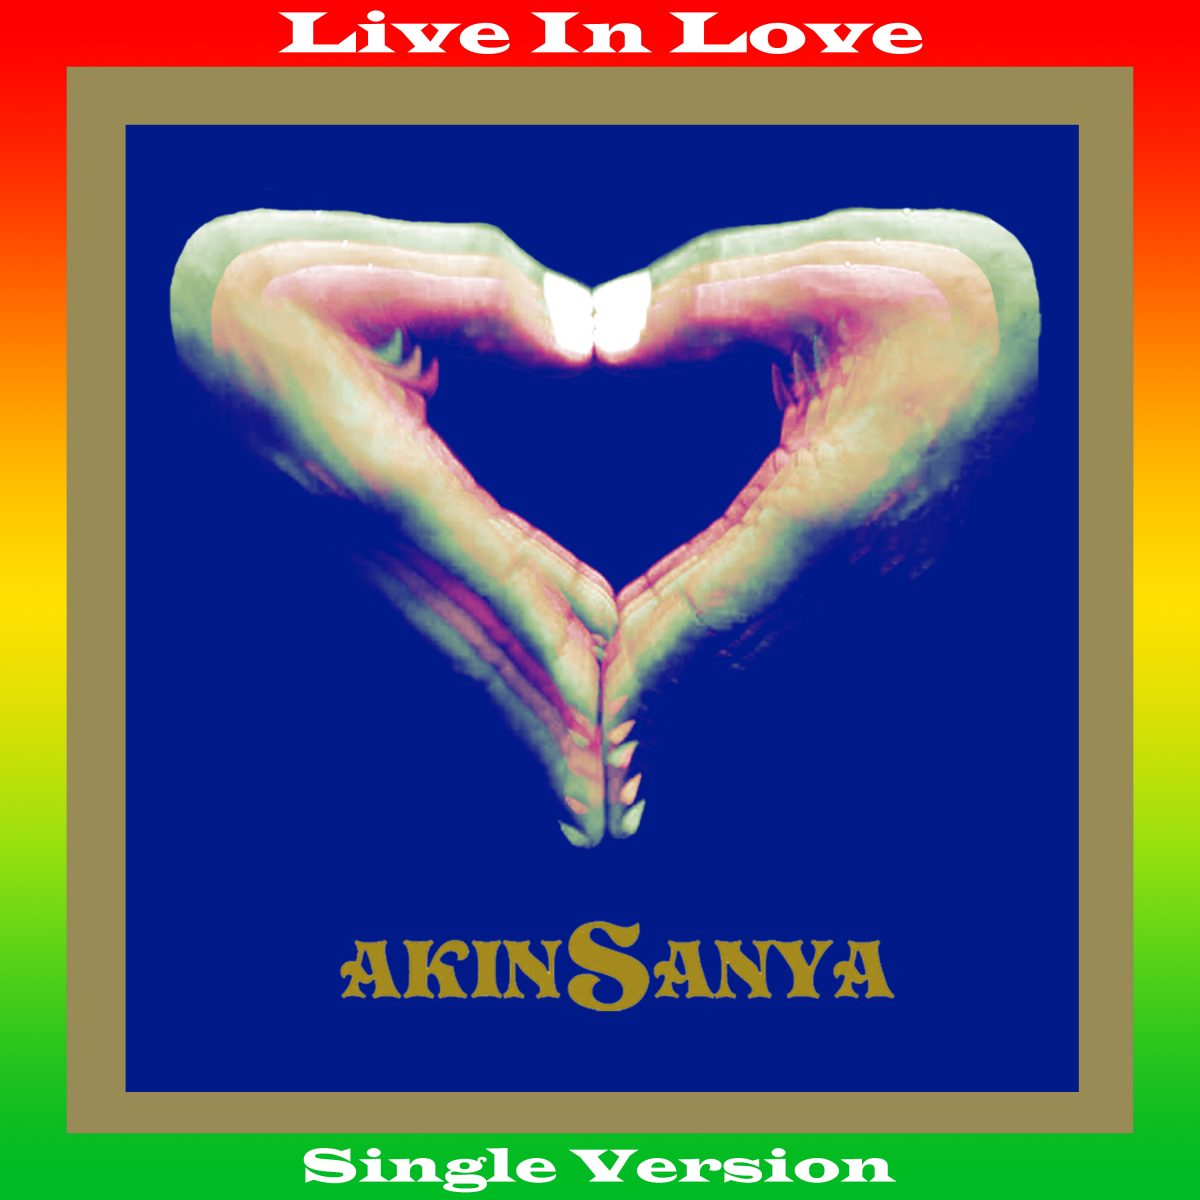 """Akinsanya - Live In Love (Single Version)"" リリース!"